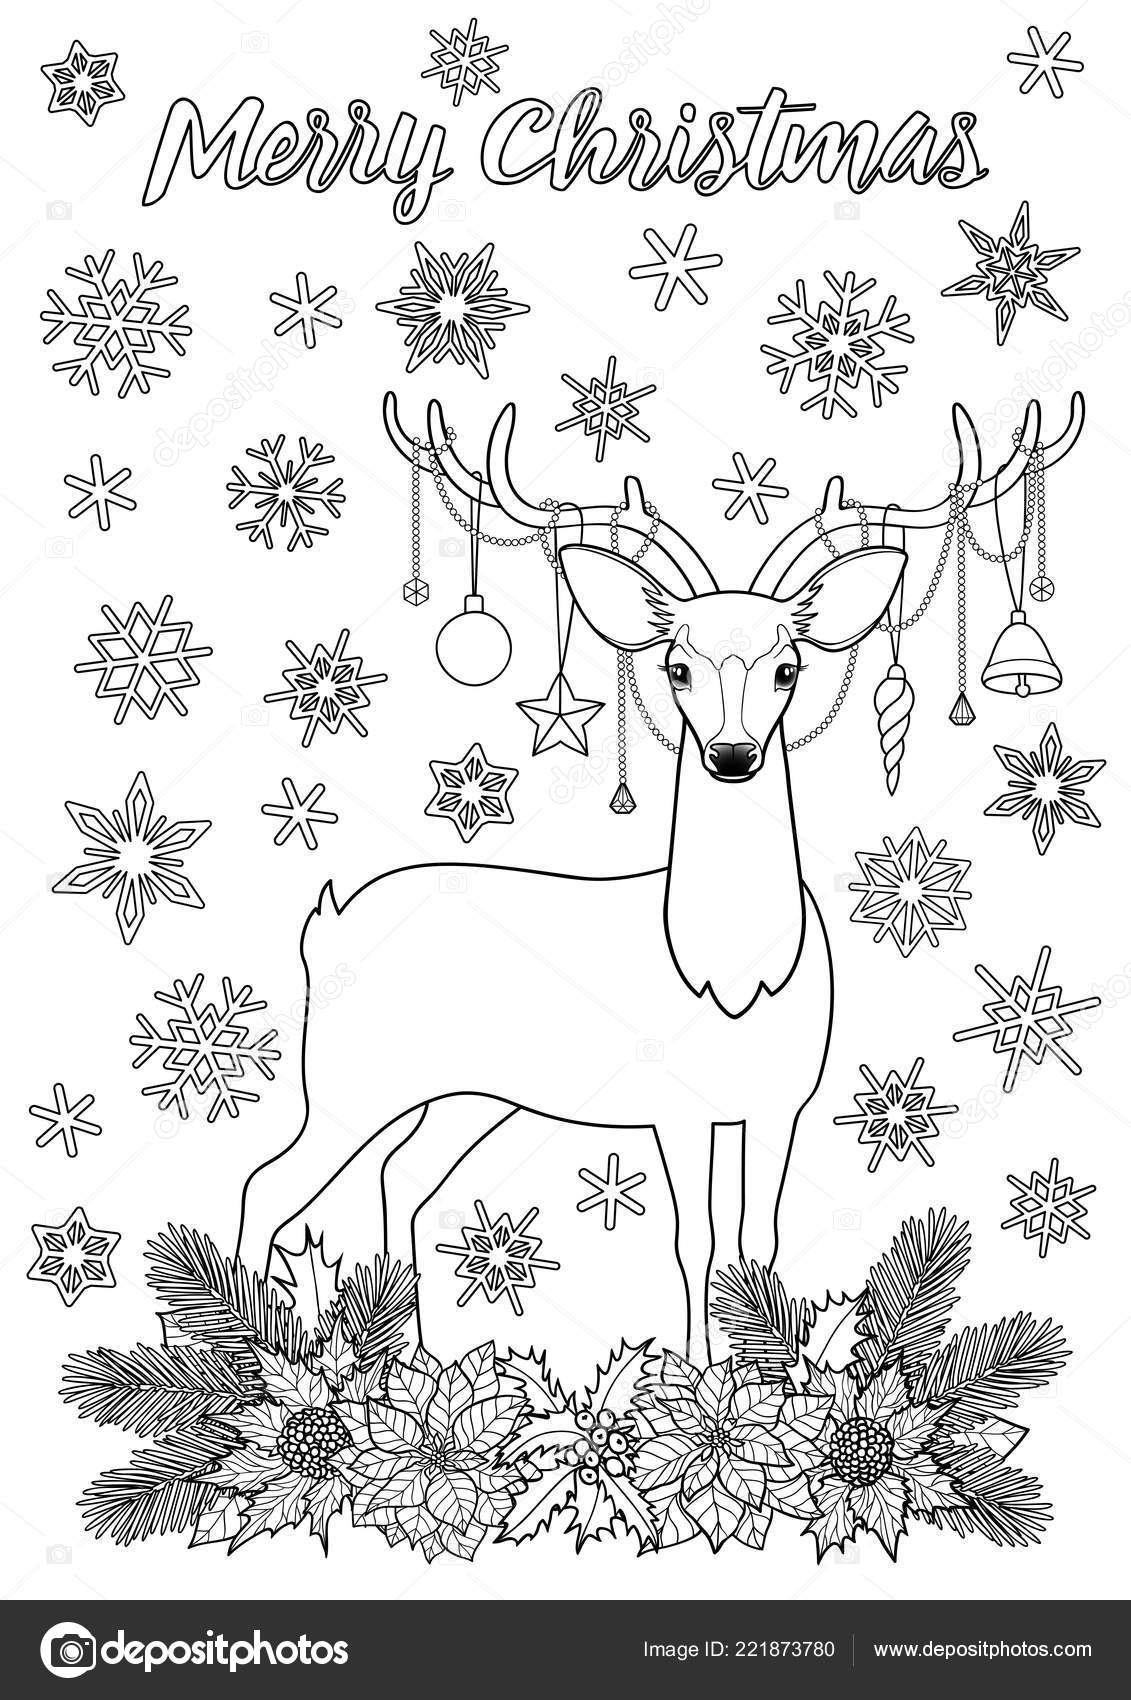 Merry Christmas Greeting Coloring Page with Deer — Stock Vector ...